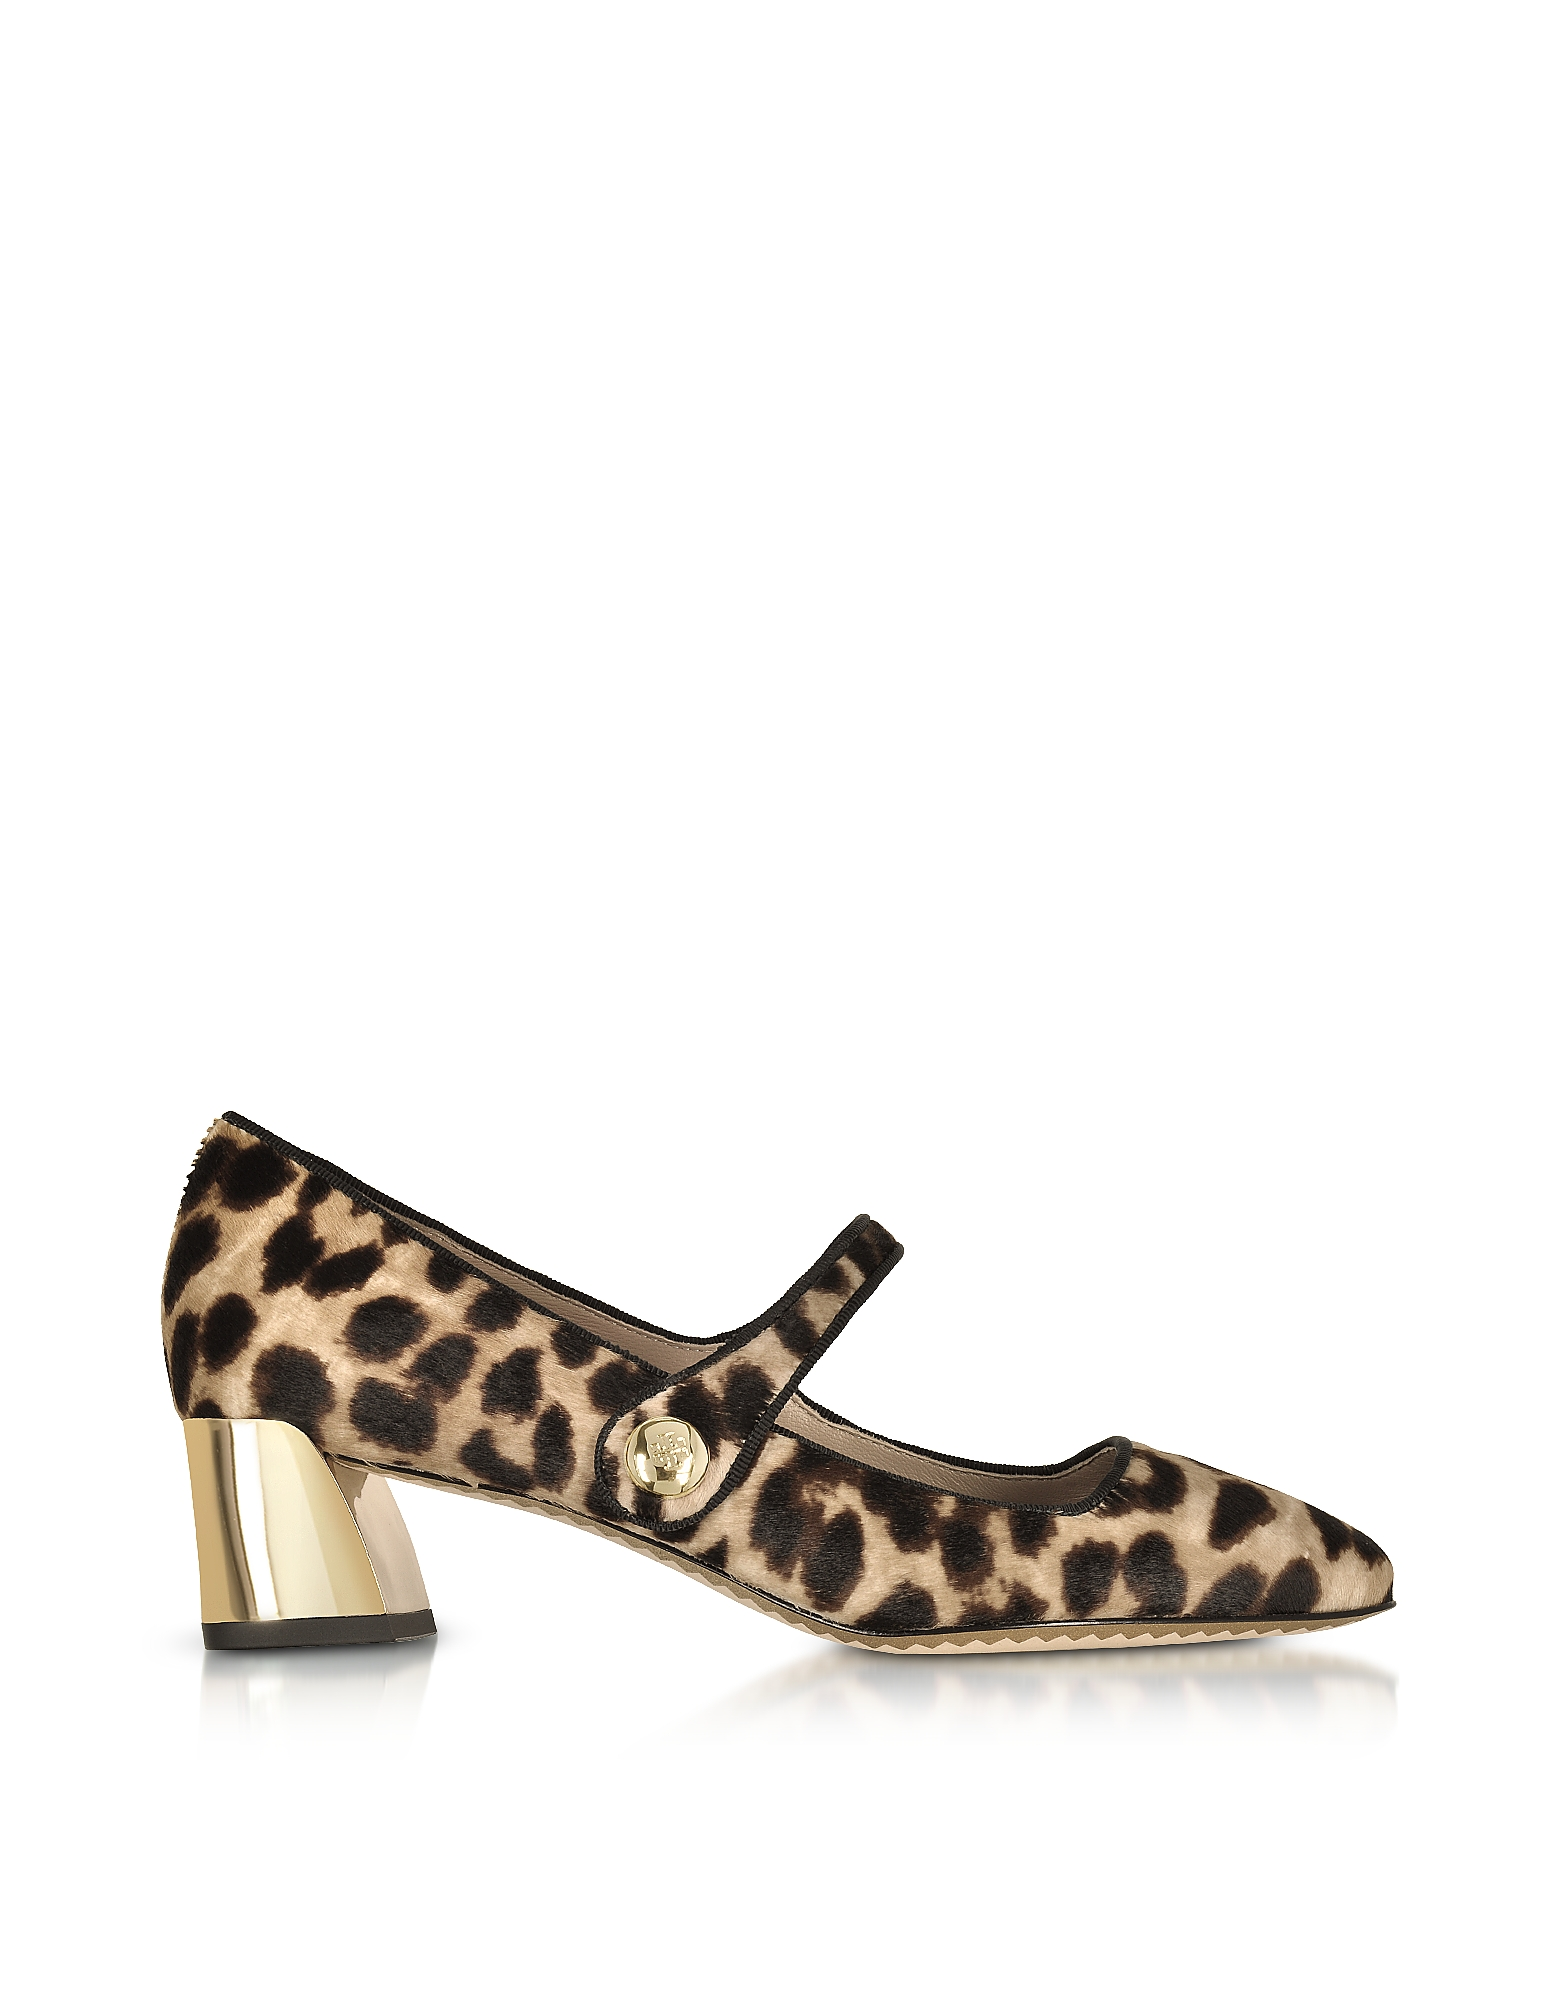 Tory Burch Marisa Natural Leopard Print and Black Leather Mary Jane Pumps